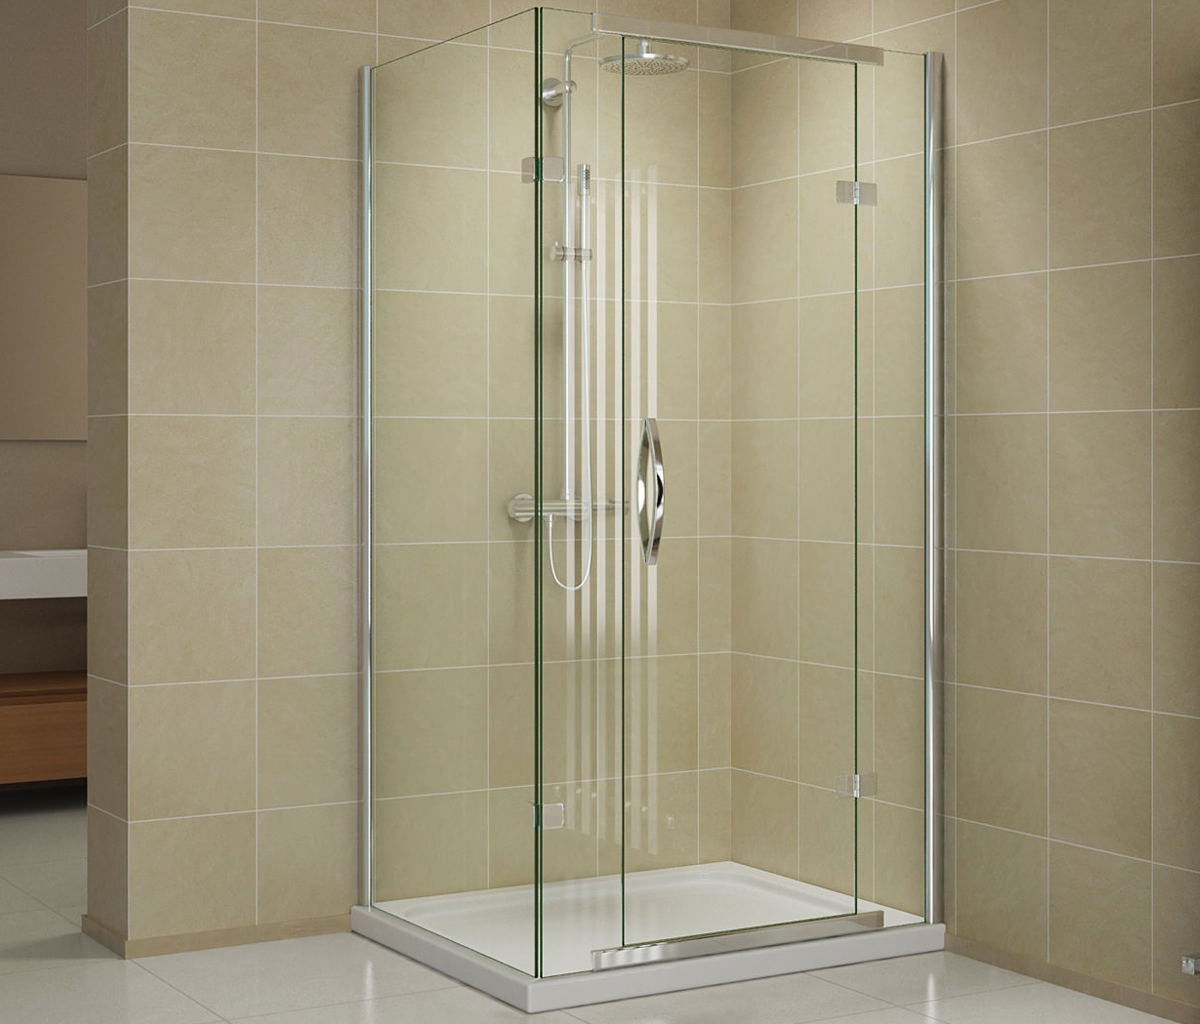 Beo infinite 2 sided hinged door shower enclosure 1200 x for 1200 hinged shower door